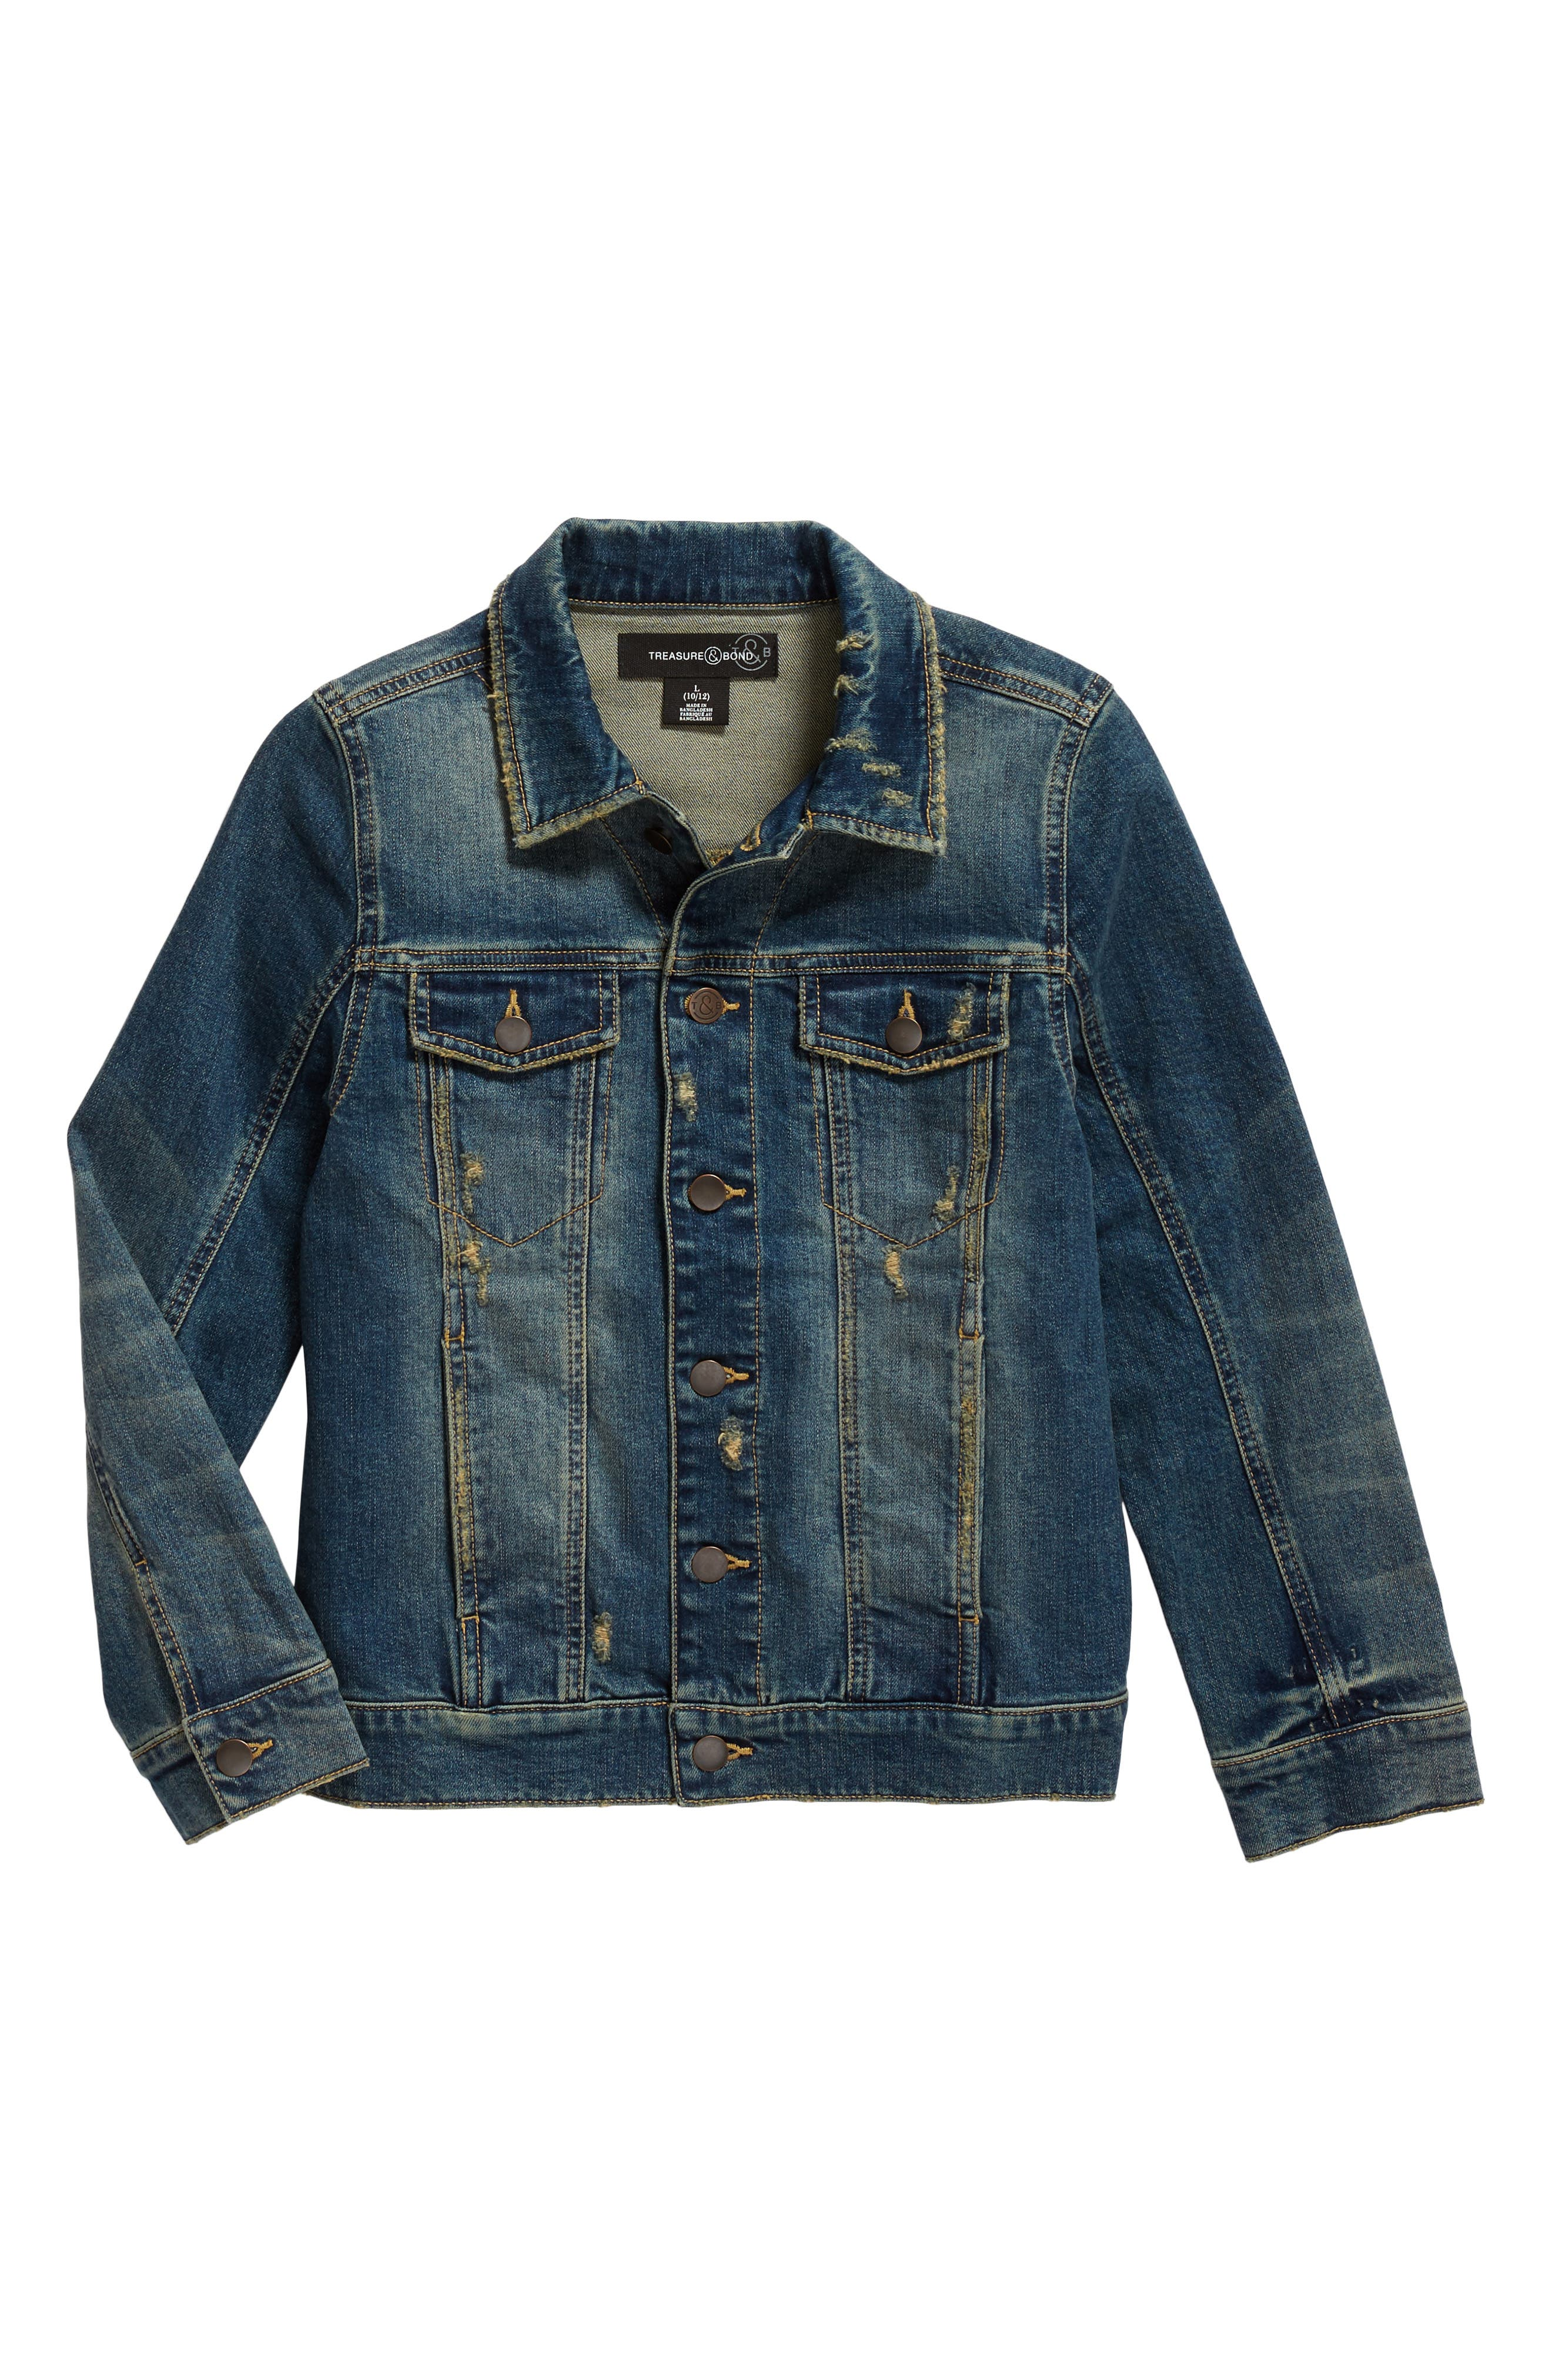 Treasure & Bond Distressed Denim Jacket (Big Boys)